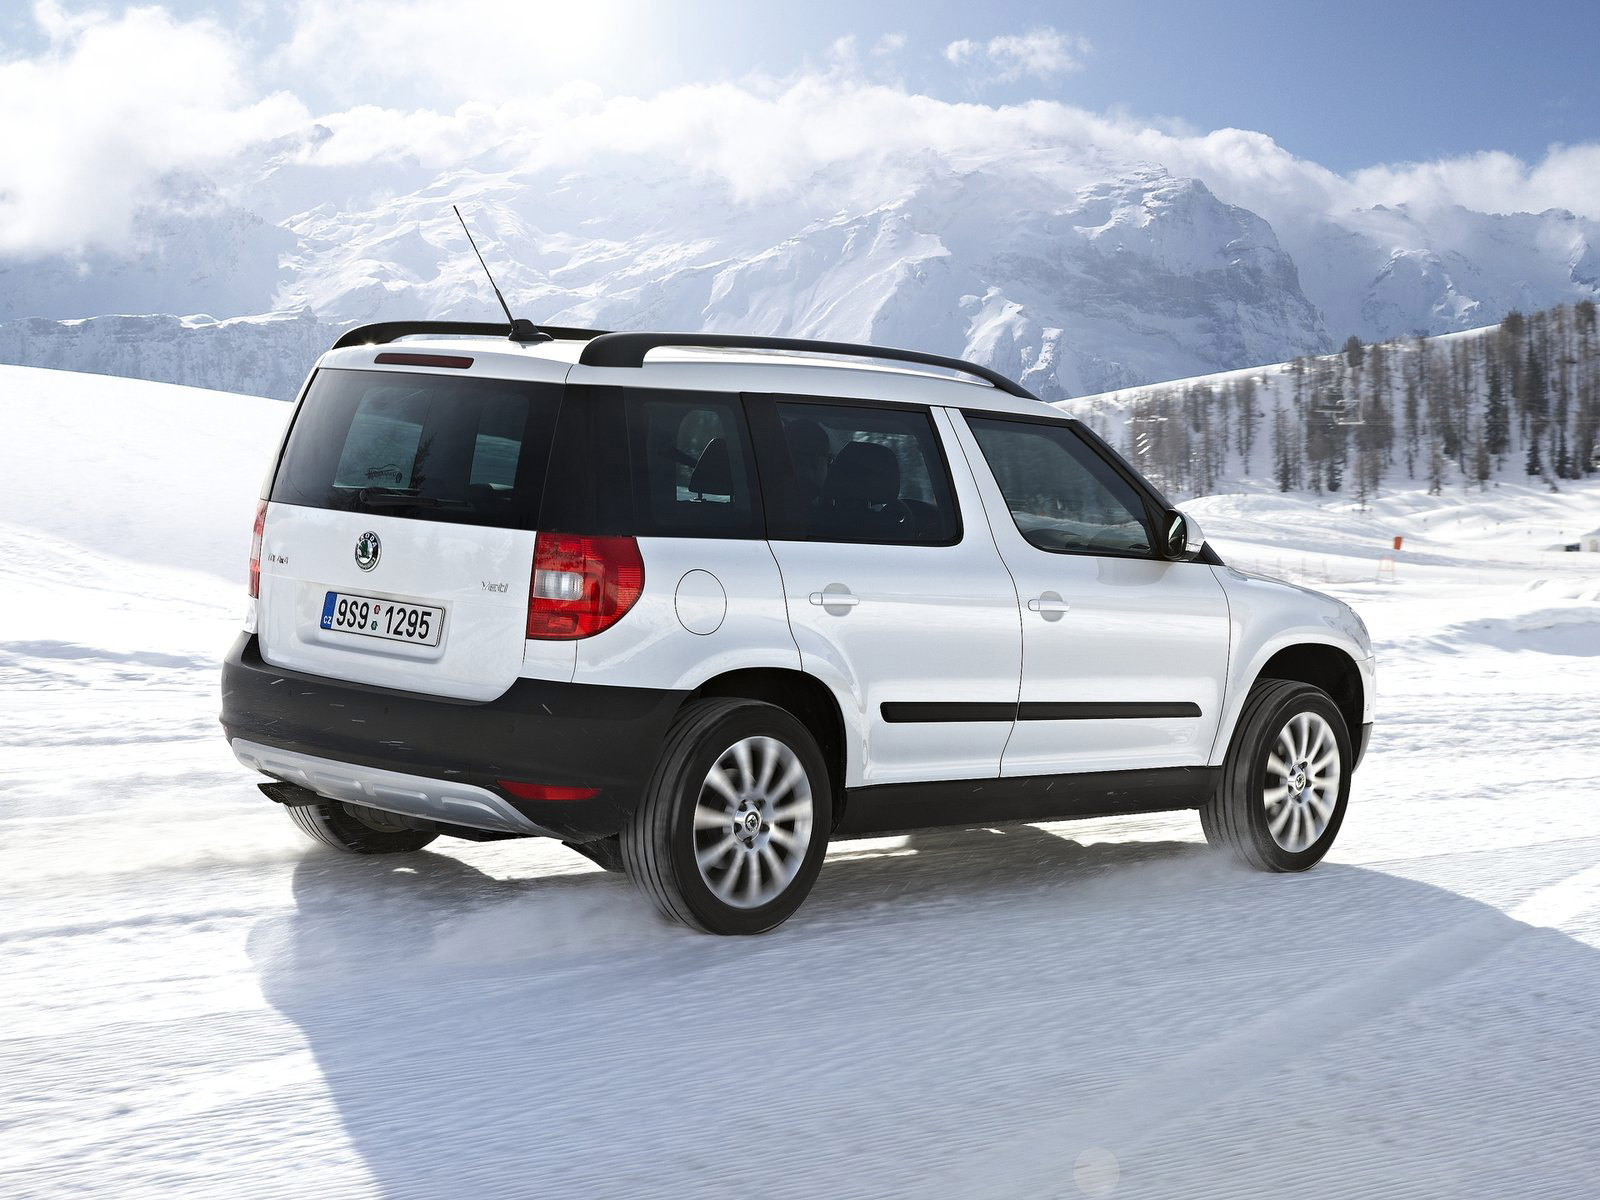 2011 SKODA Yeti 4x4 car wallpaper car review 1600x1200